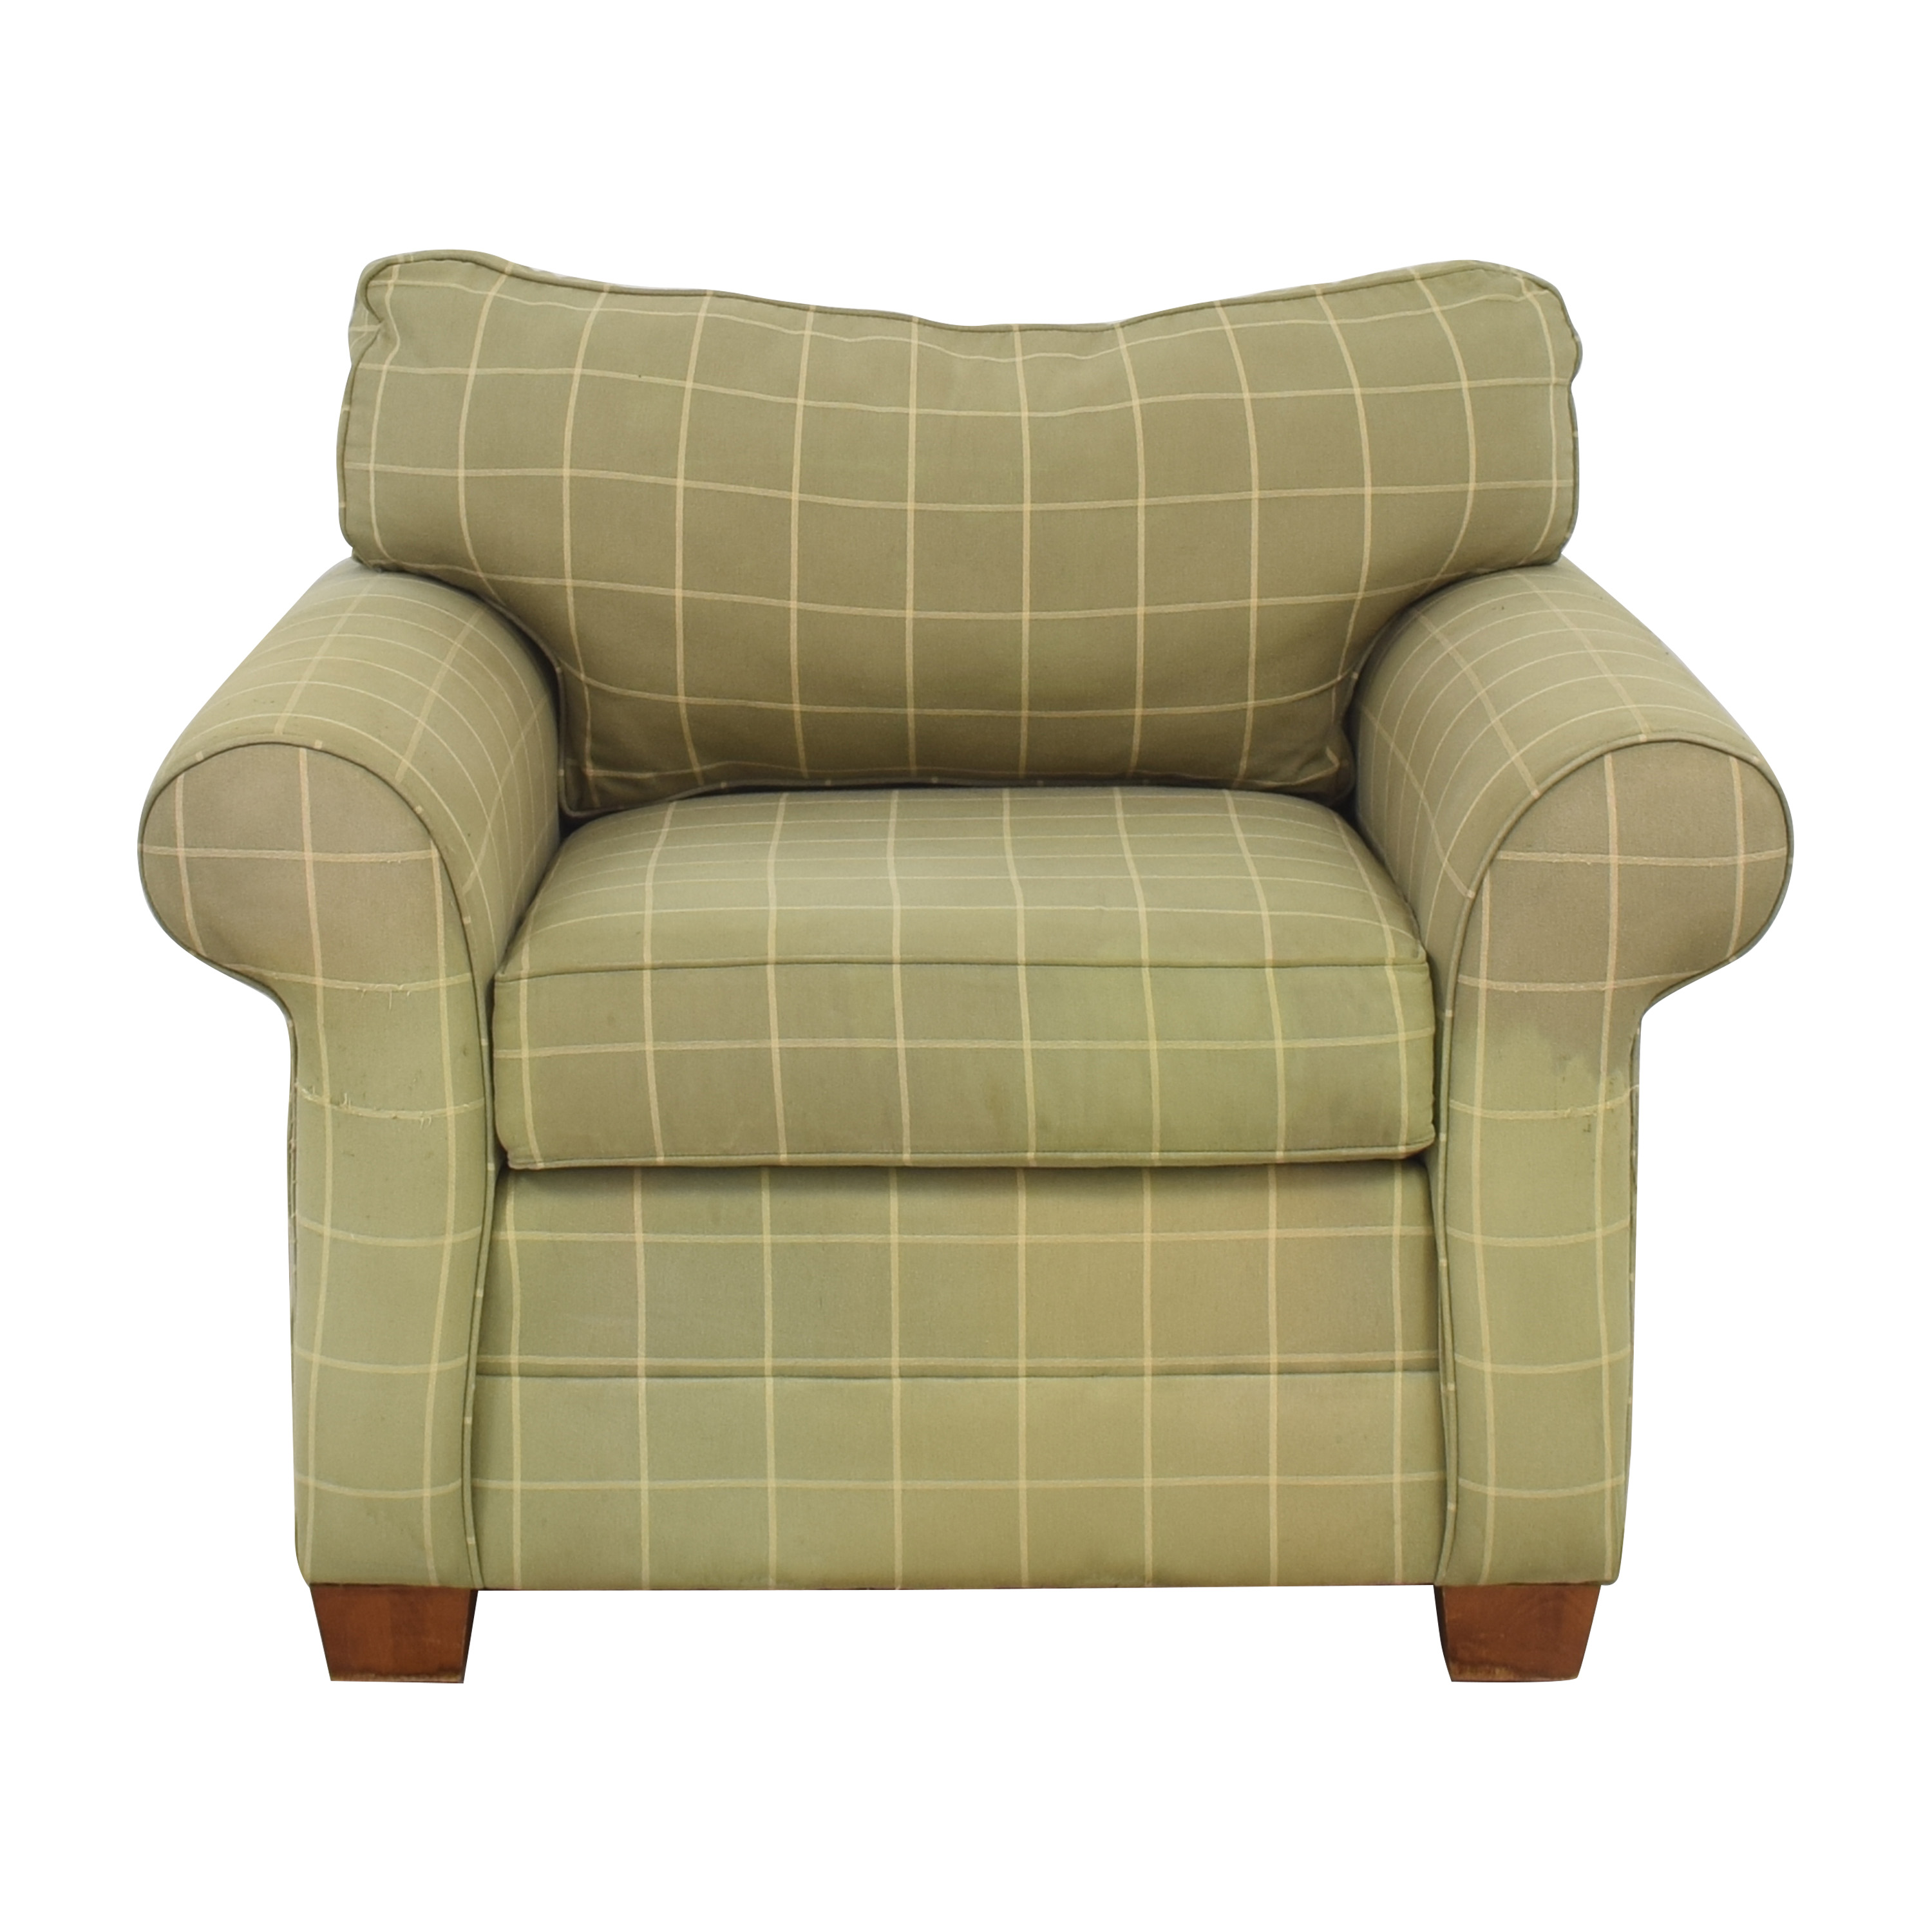 Ethan Allen Ethan Allen Bennett Roll-Arm Chair price